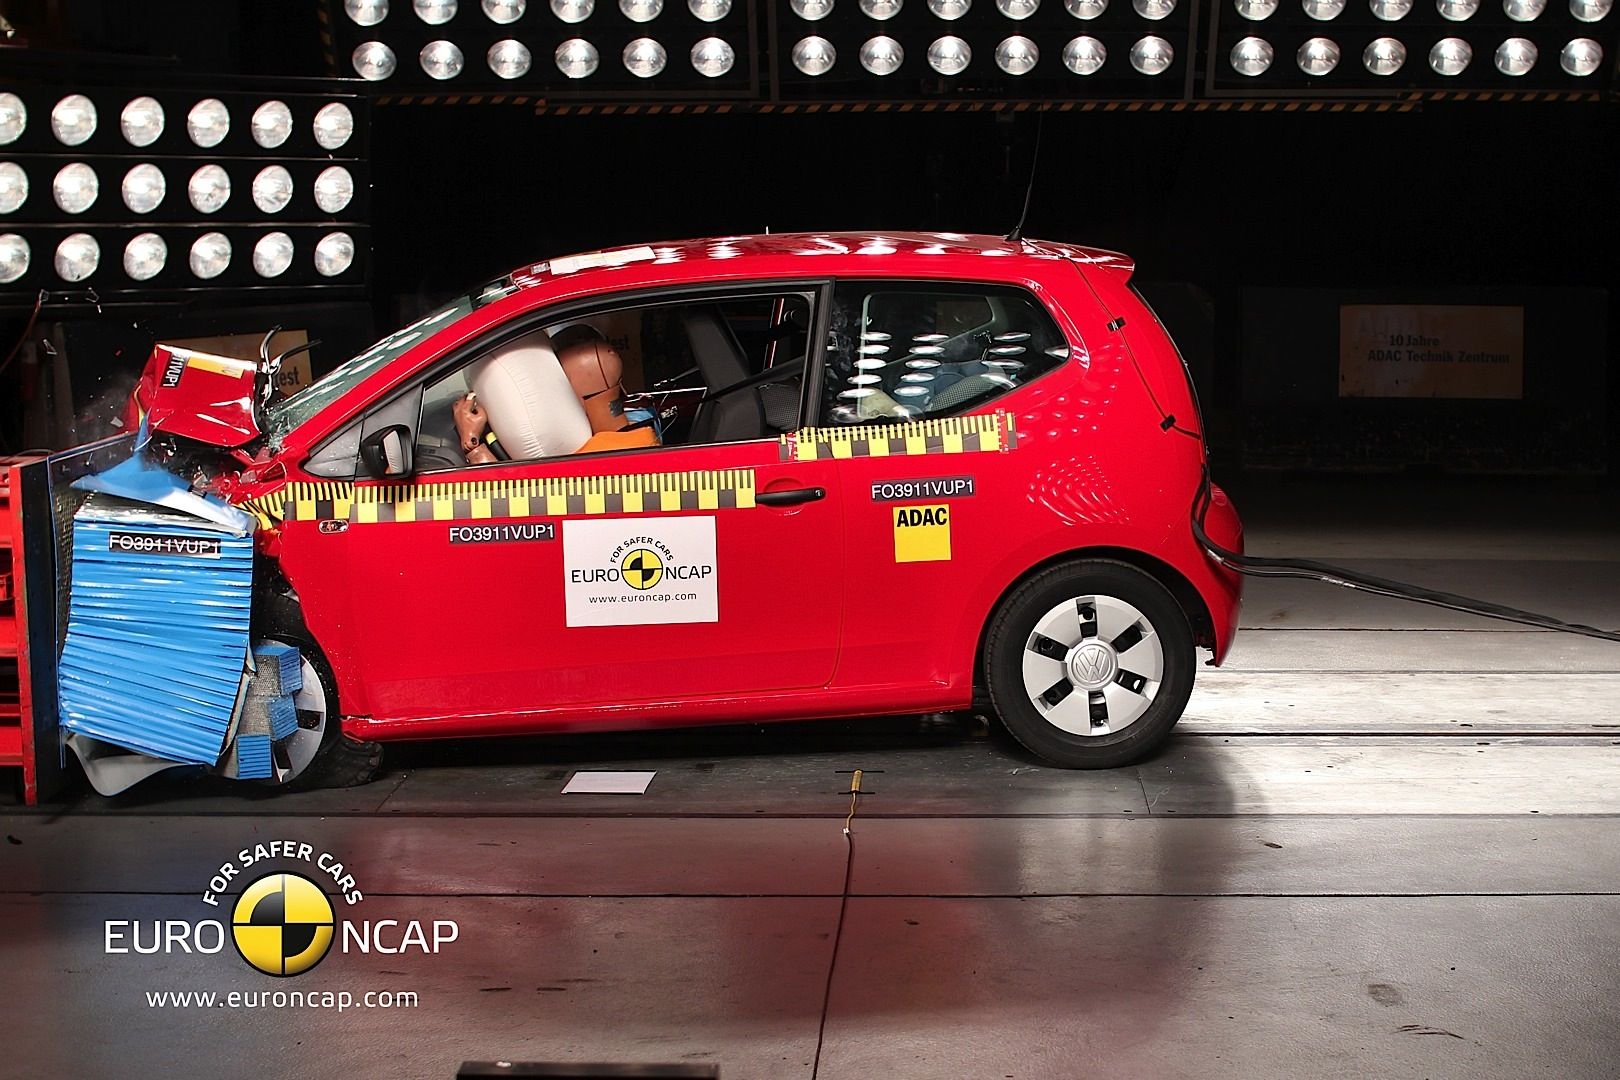 volkswagen up gets 5 star euro ncap rating autoevolution. Black Bedroom Furniture Sets. Home Design Ideas